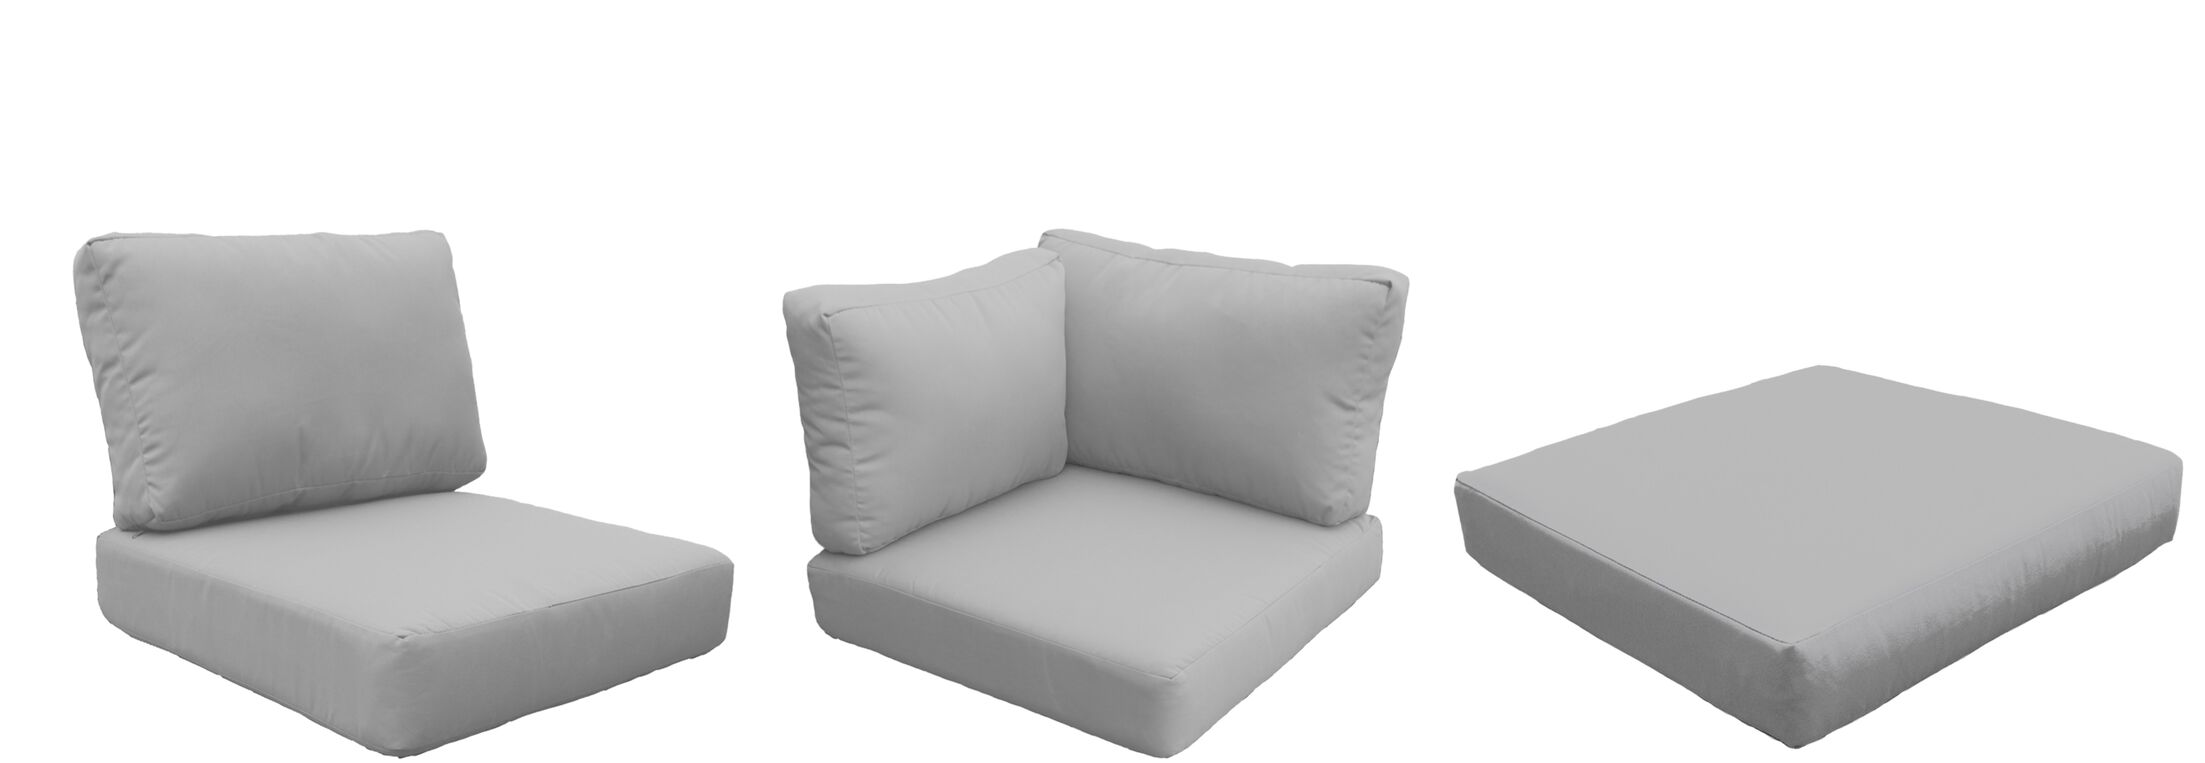 East Village Outdoor 22 Piece Lounge Chair Cushion Set Fabric: Gray